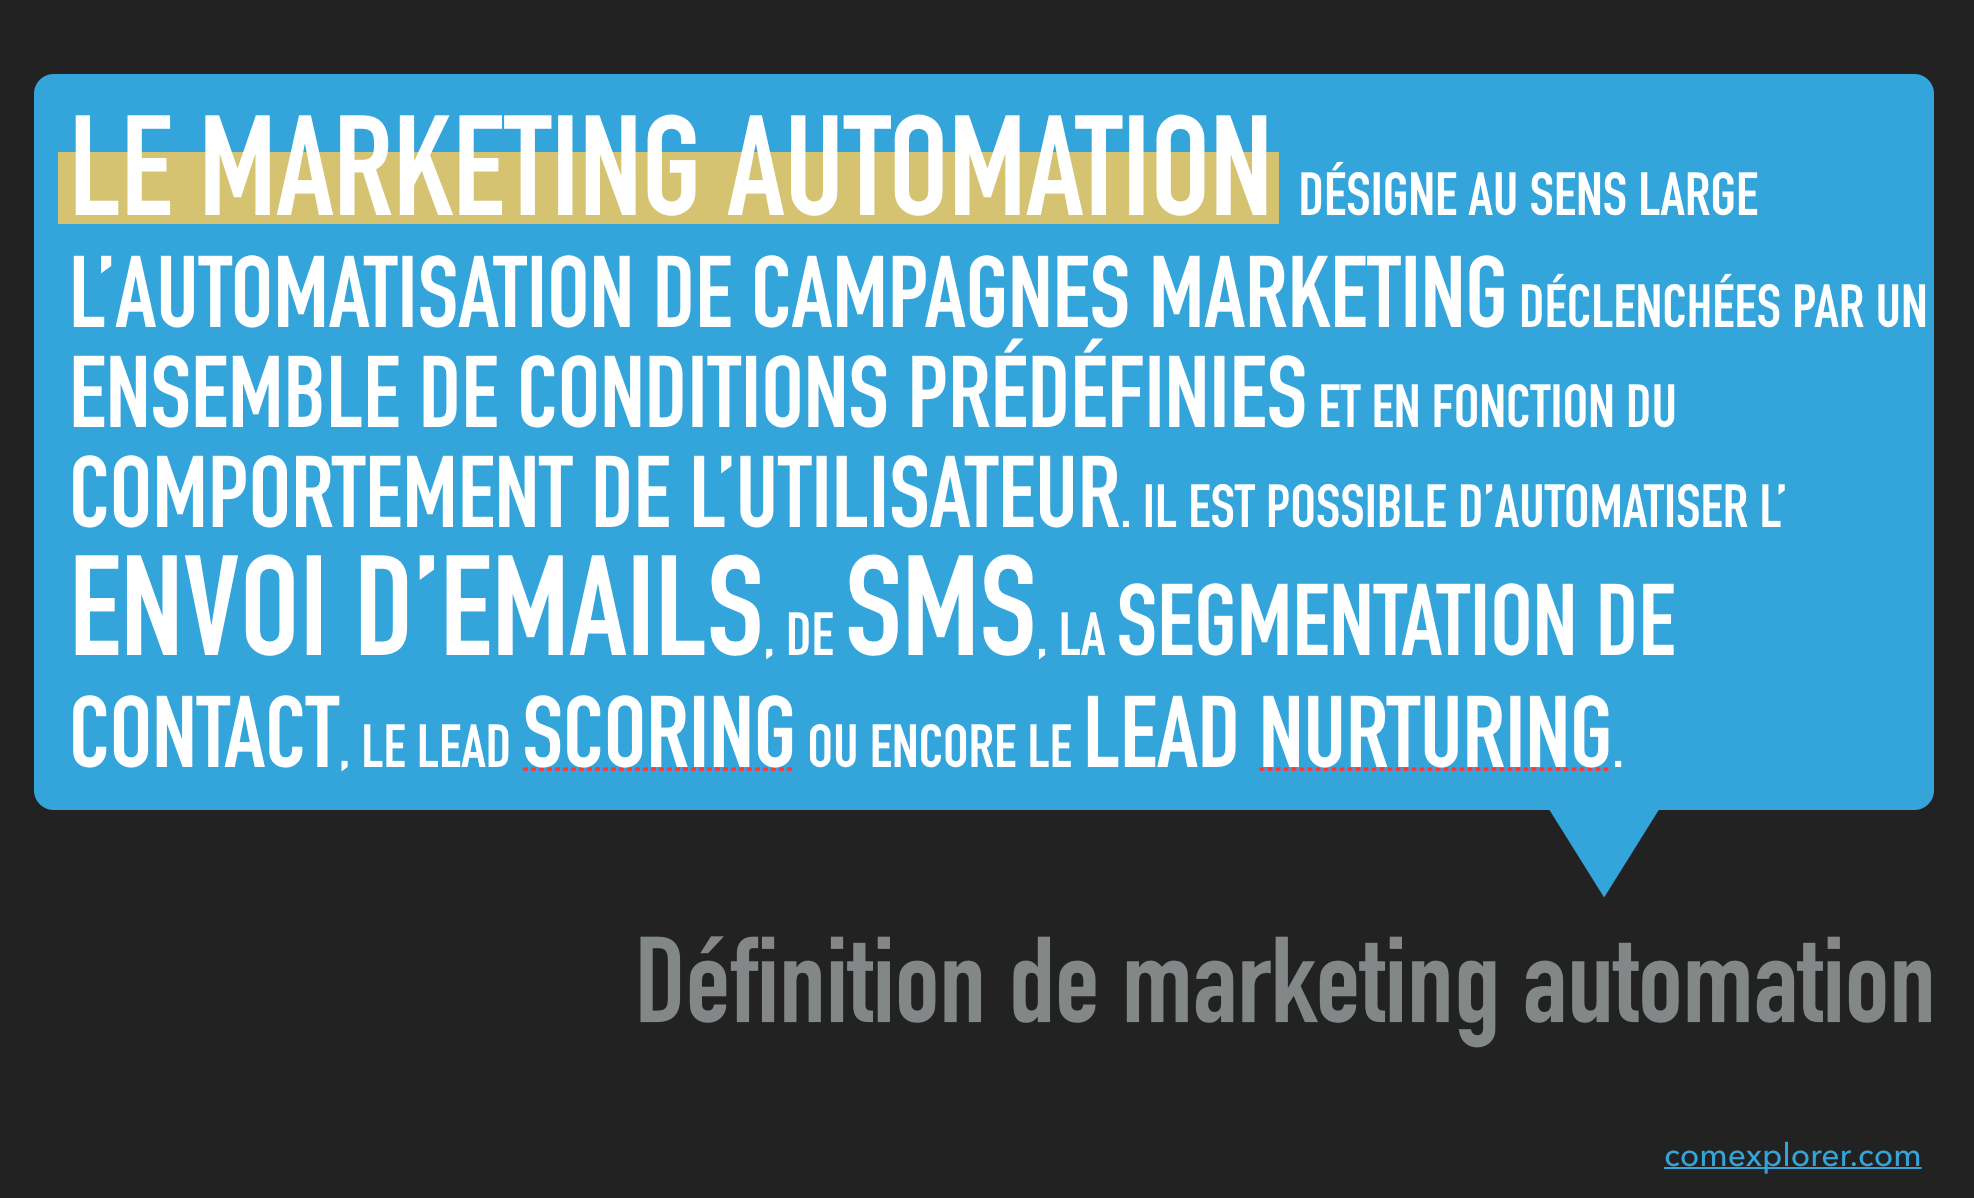 definition-marketing-automation-1